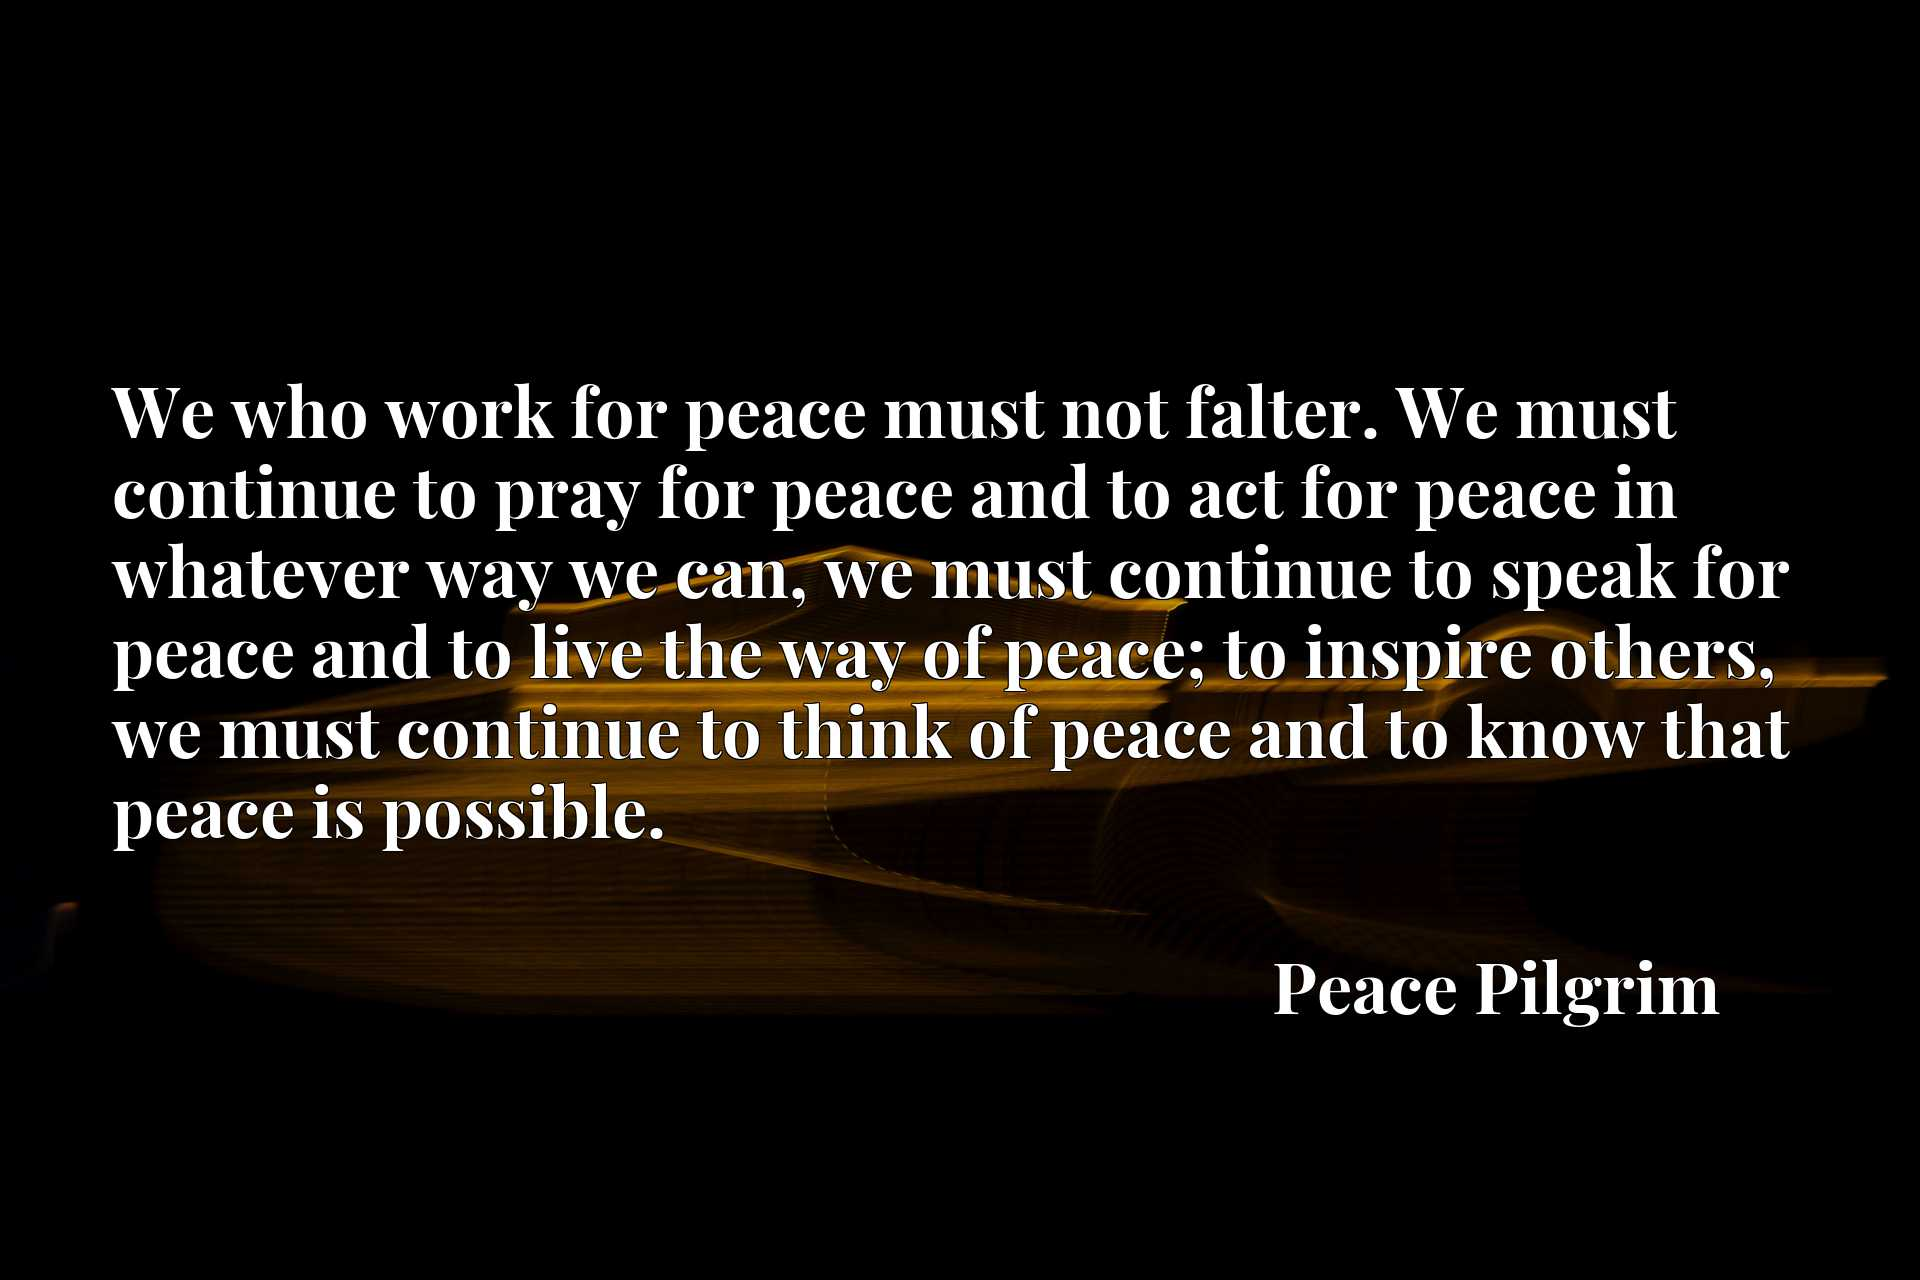 We who work for peace must not falter. We must continue to pray for peace and to act for peace in whatever way we can, we must continue to speak for peace and to live the way of peace; to inspire others, we must continue to think of peace and to know that peace is possible.